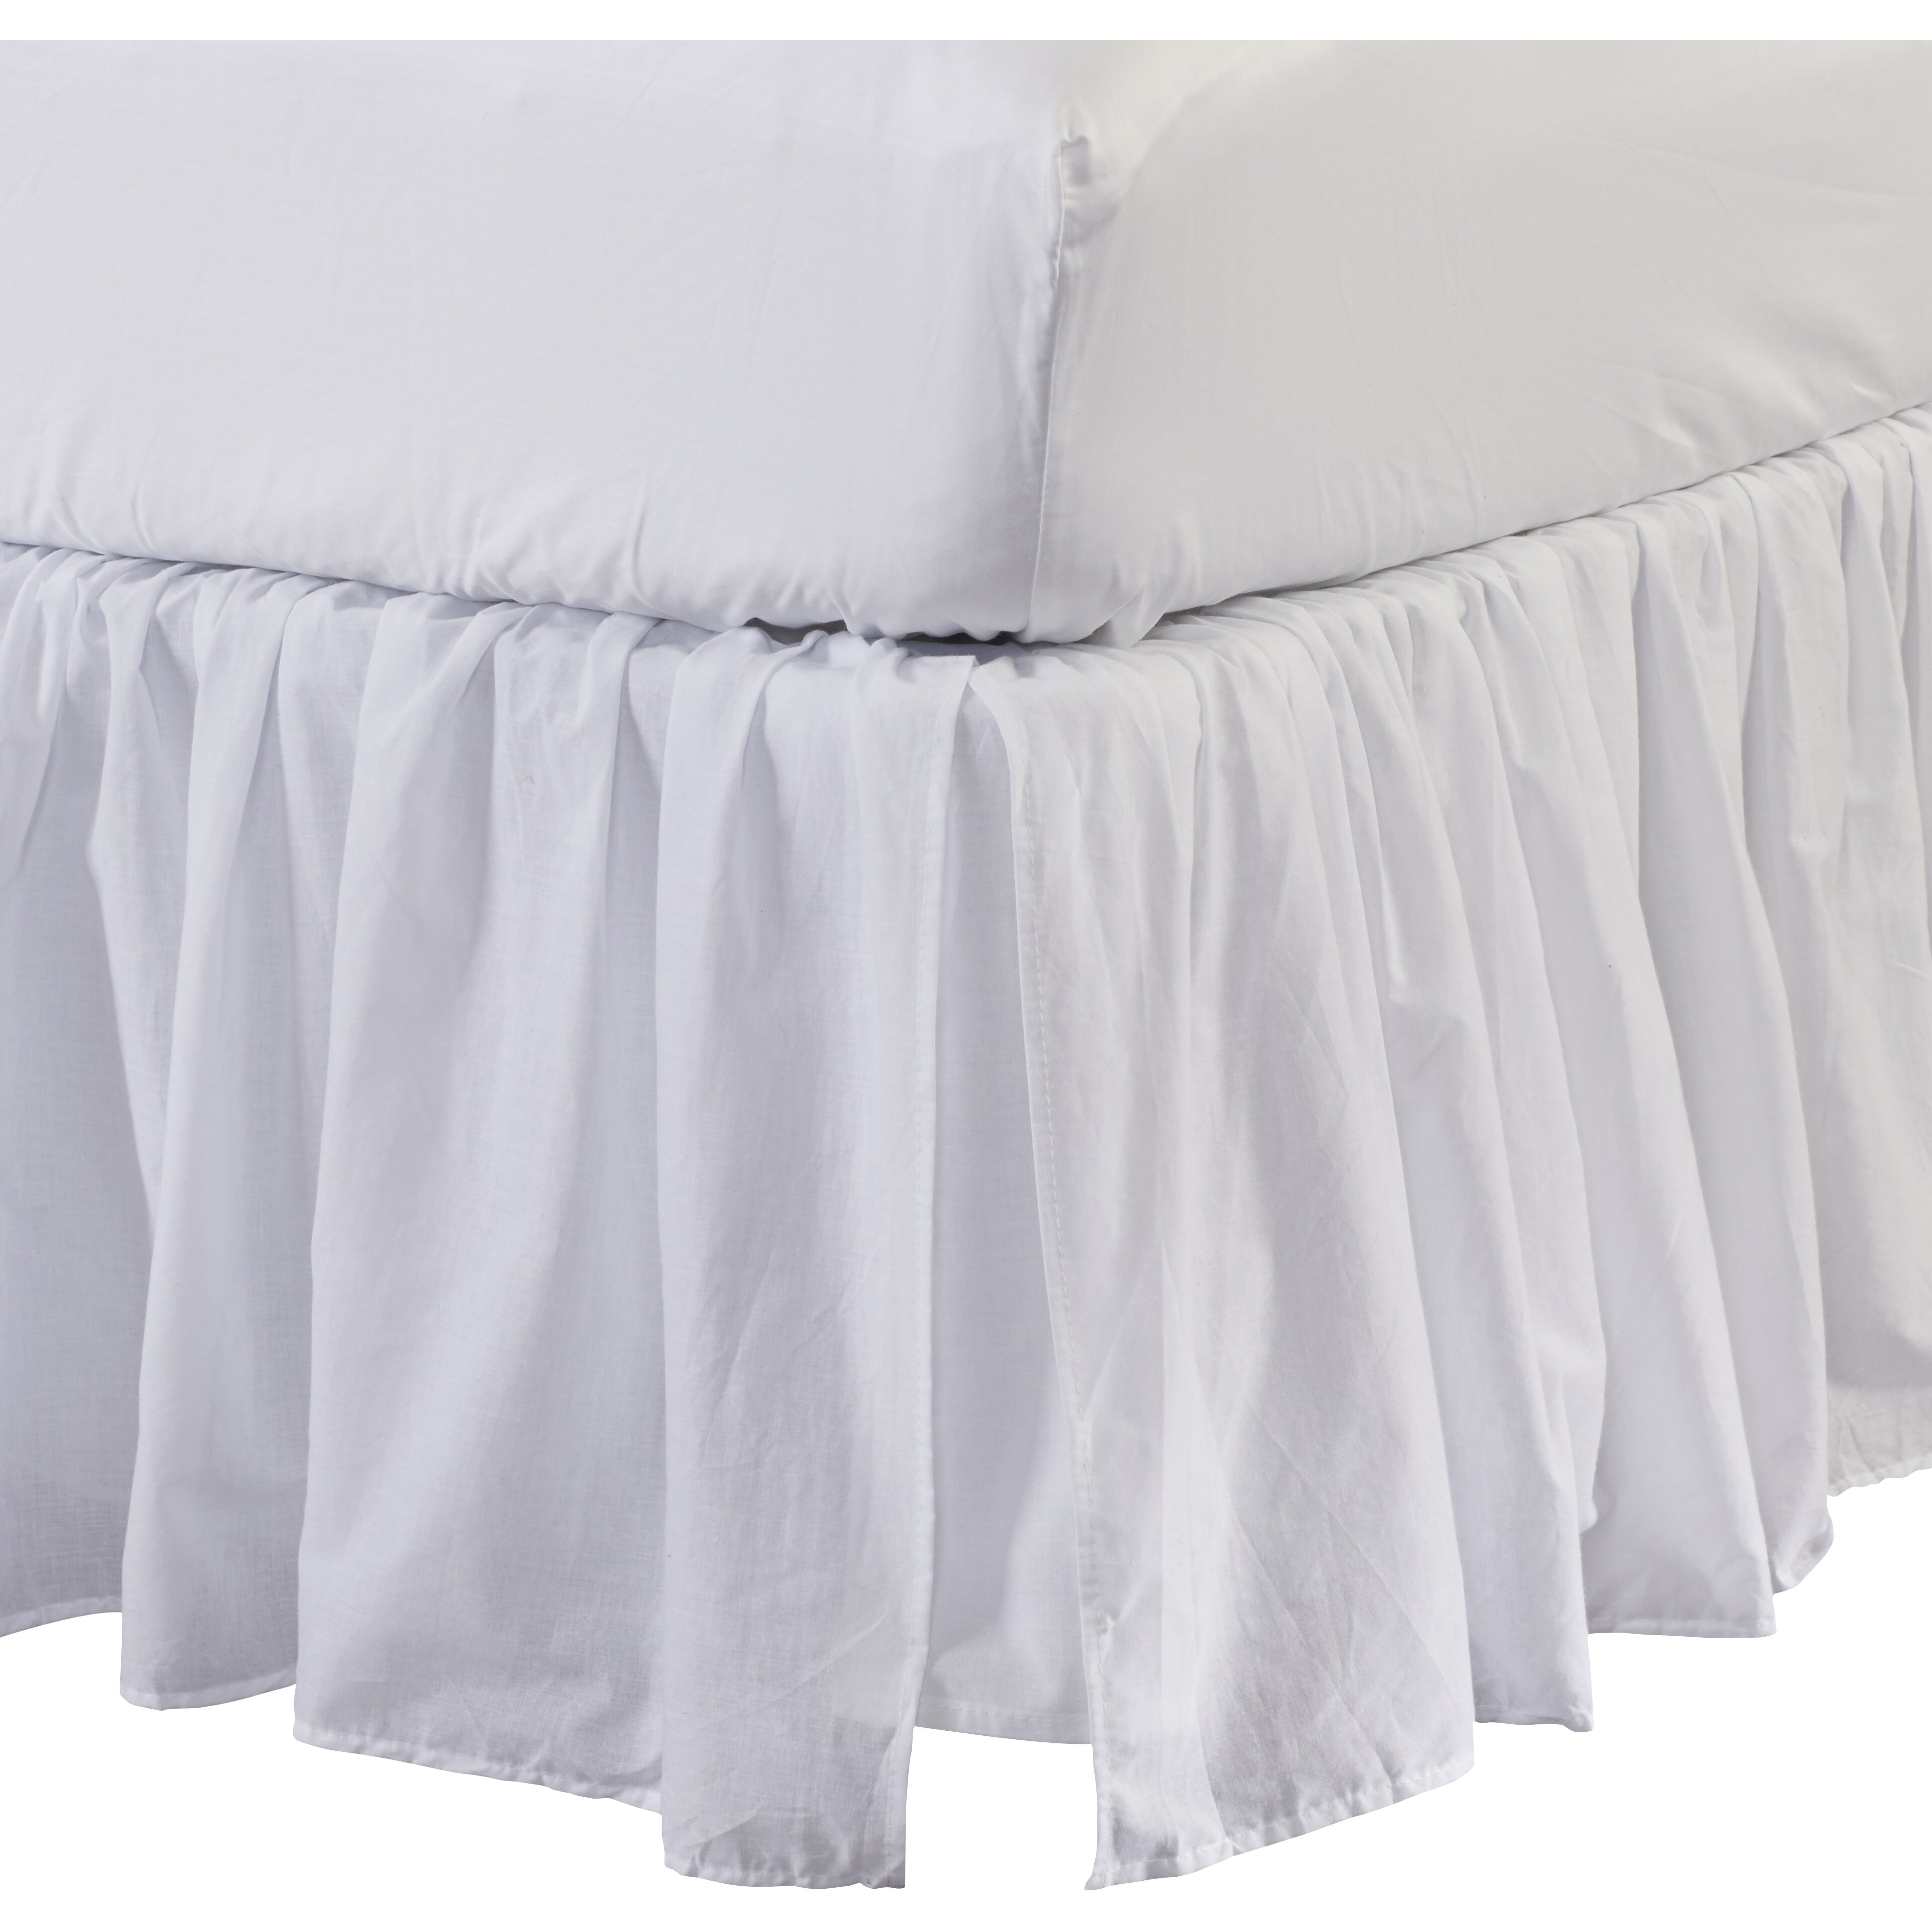 Cotton Bed Skirt 69